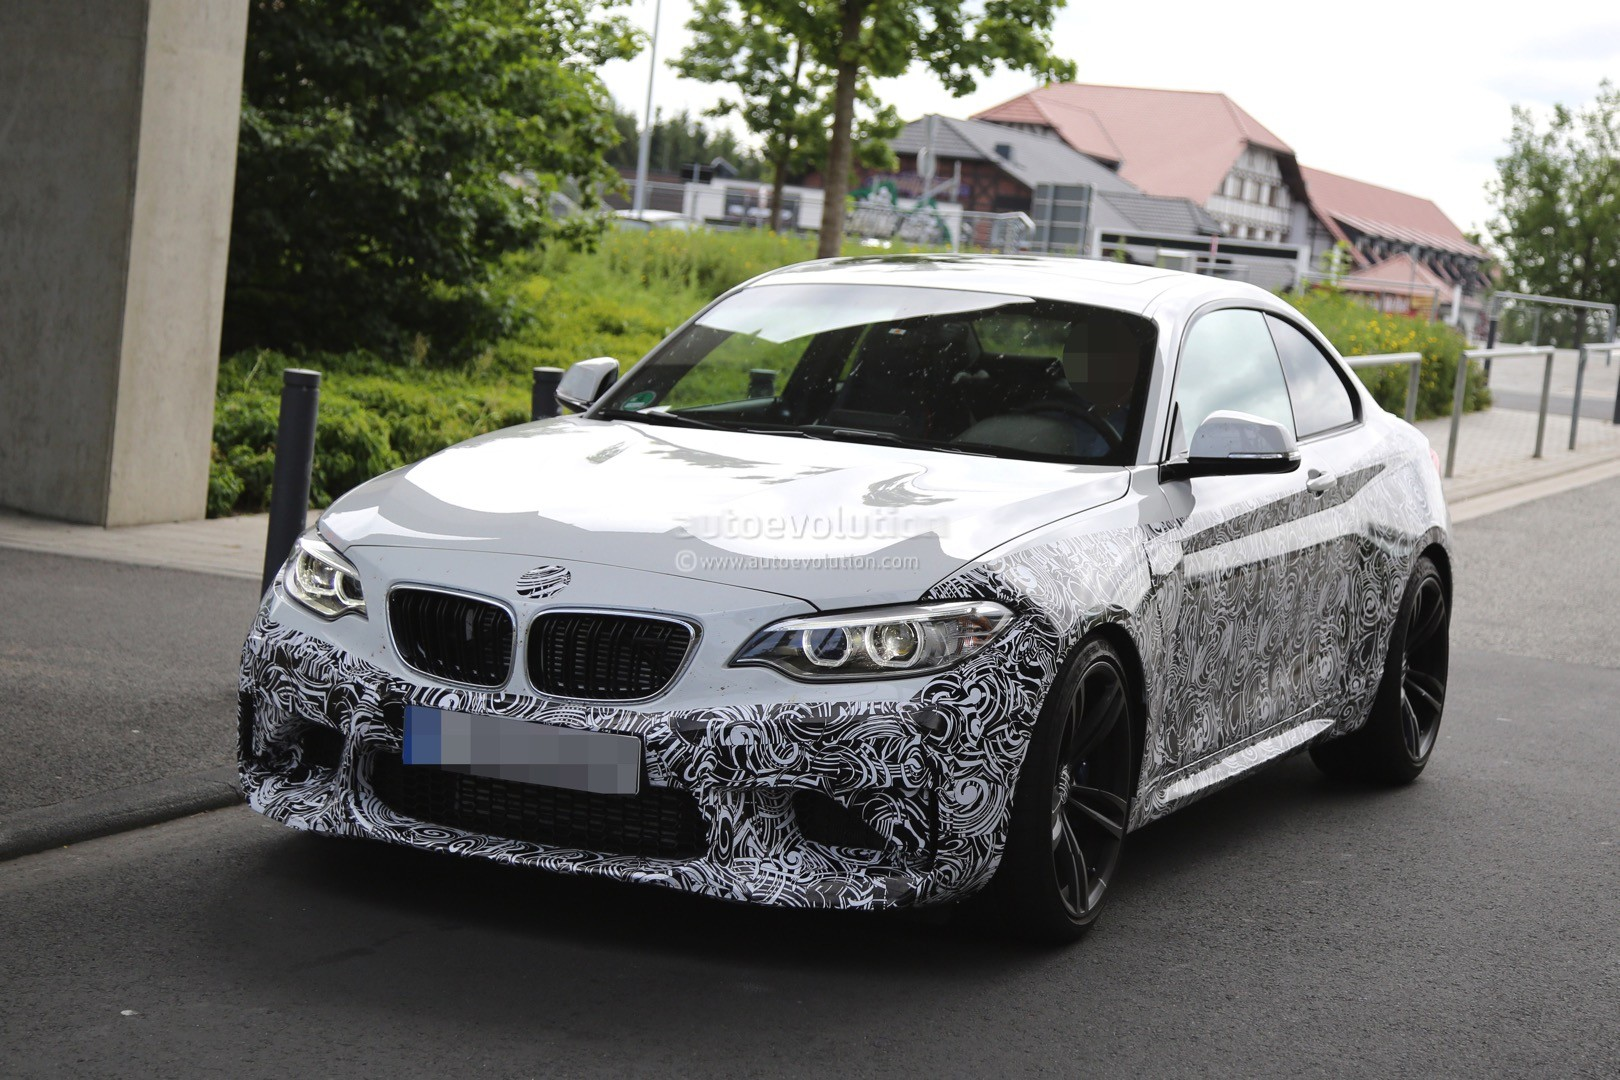 2016 bmw f87 m2 out testing on public german roads in. Black Bedroom Furniture Sets. Home Design Ideas